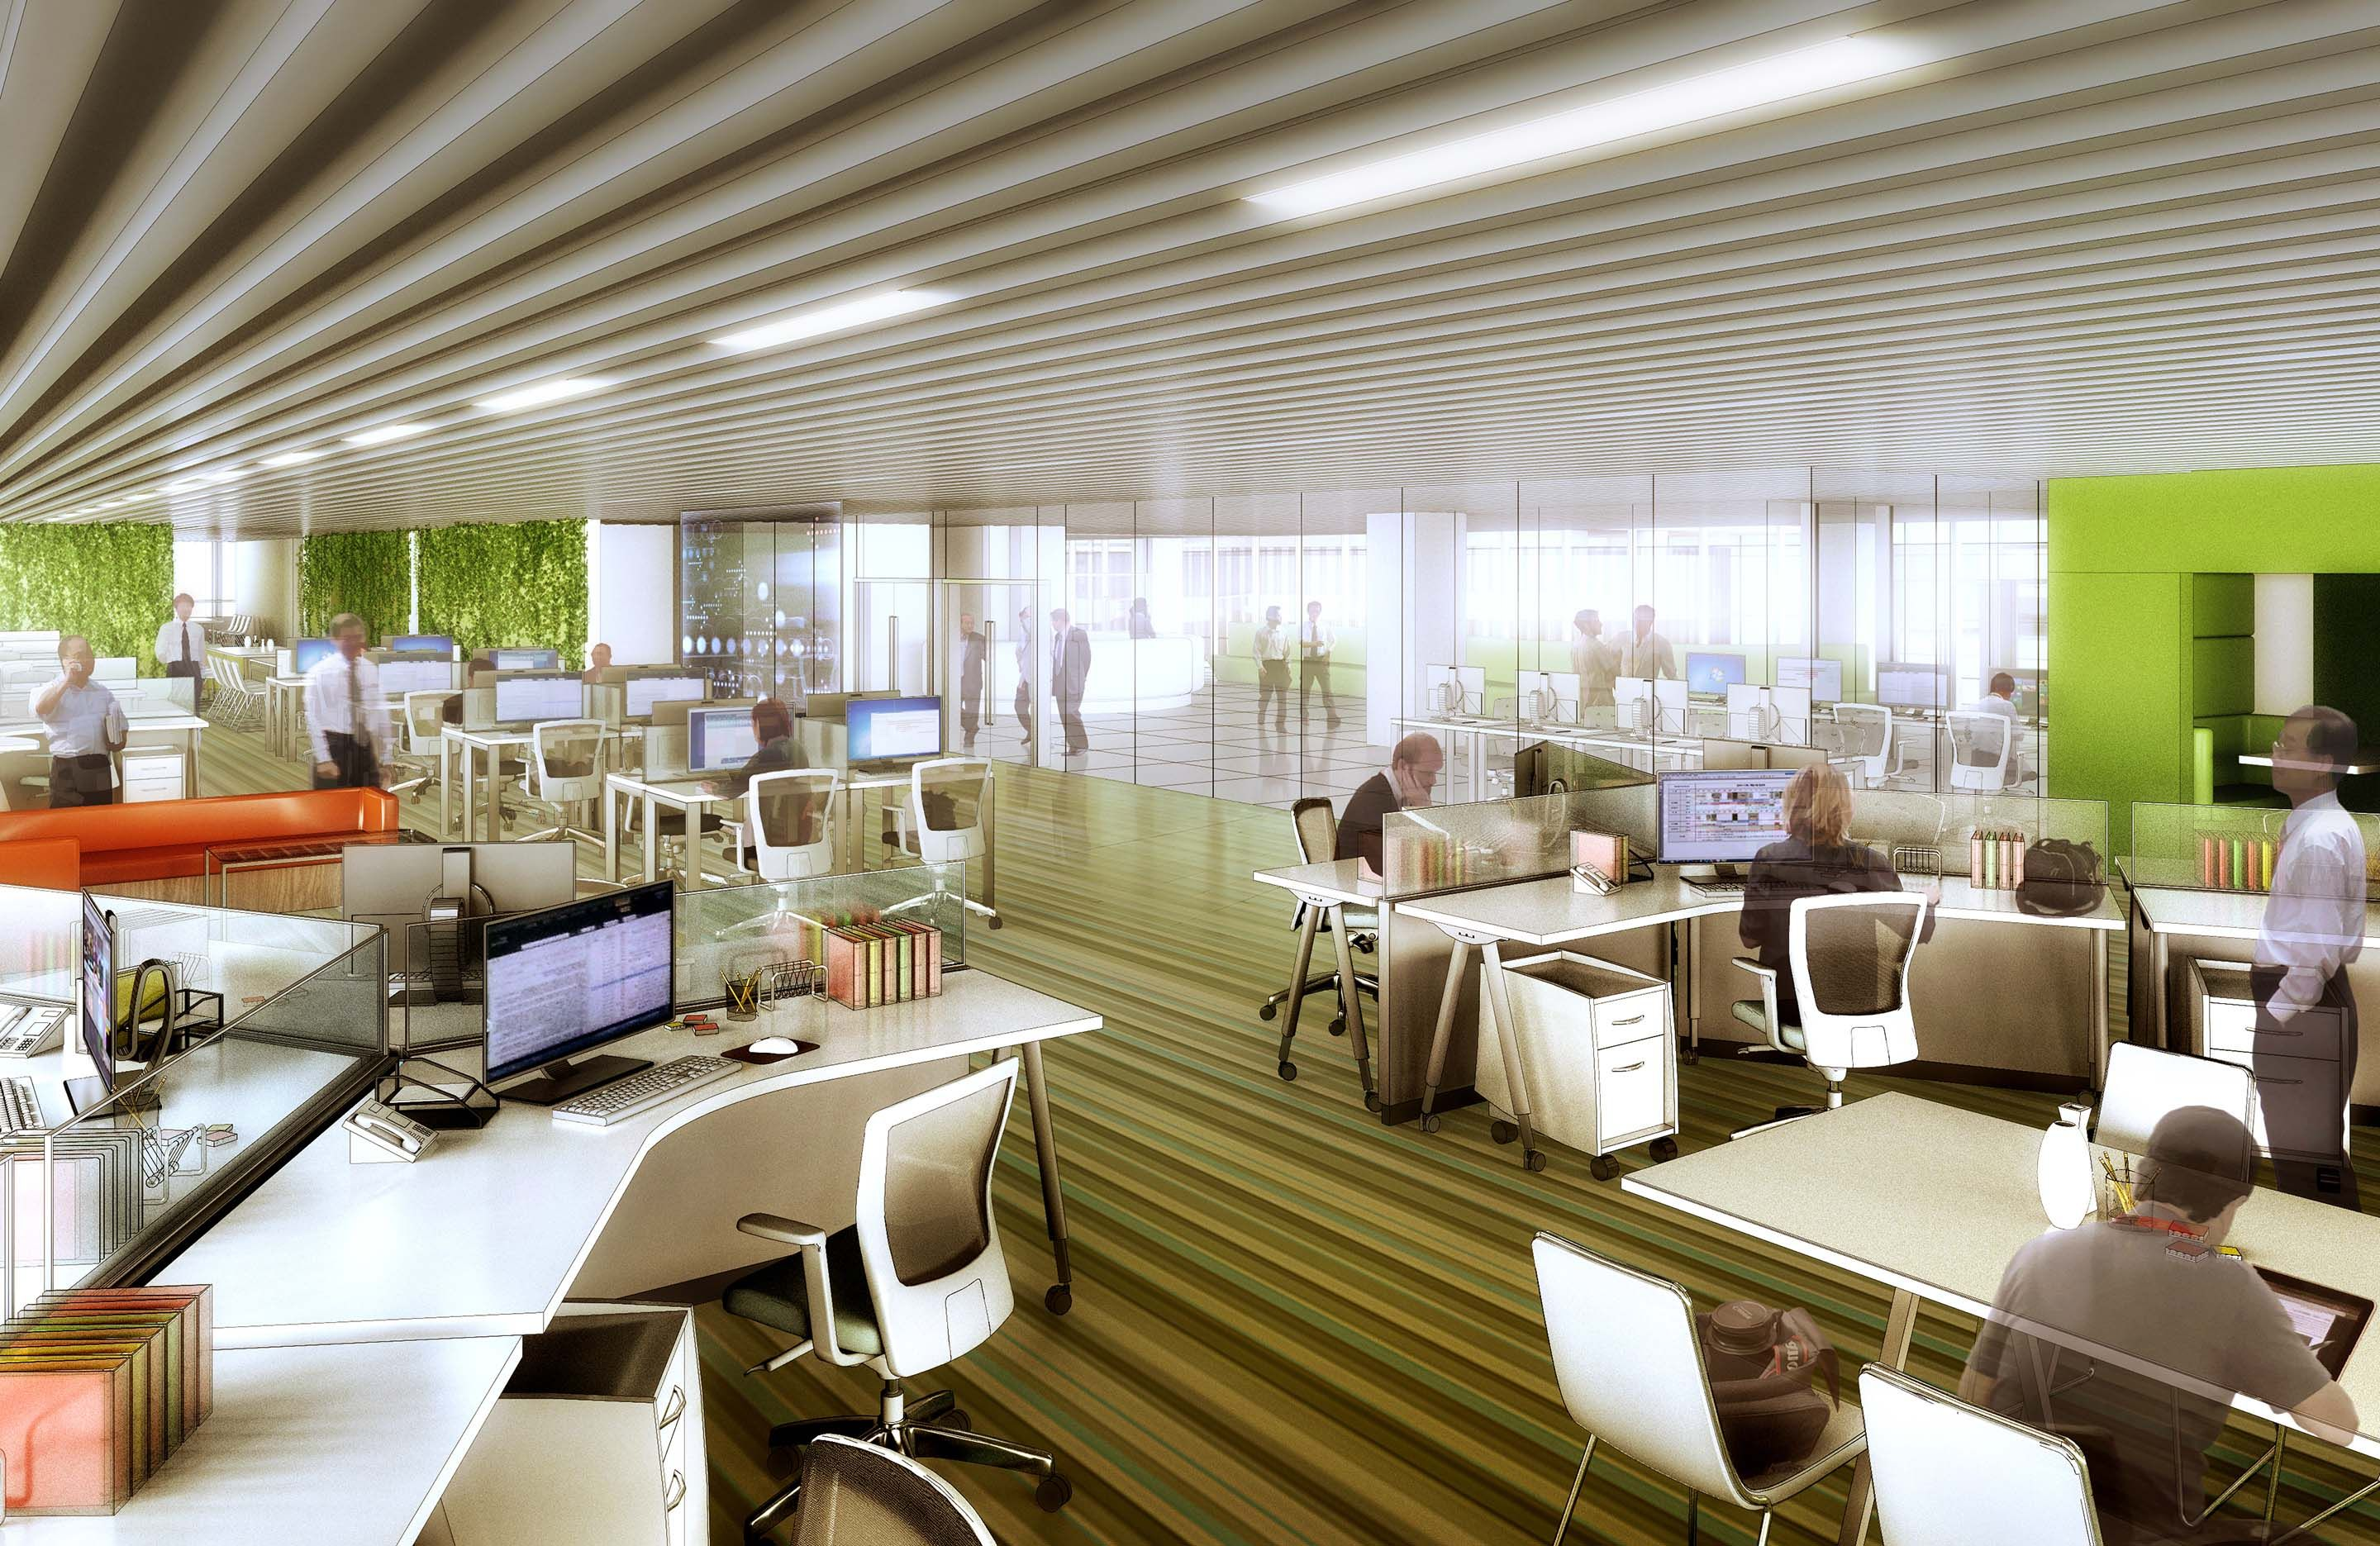 05_Smart-Work-Center_-Image-Courtesy-of-HAEAHN-Architecture-and-H-Architecture.jpg (2880×1871)